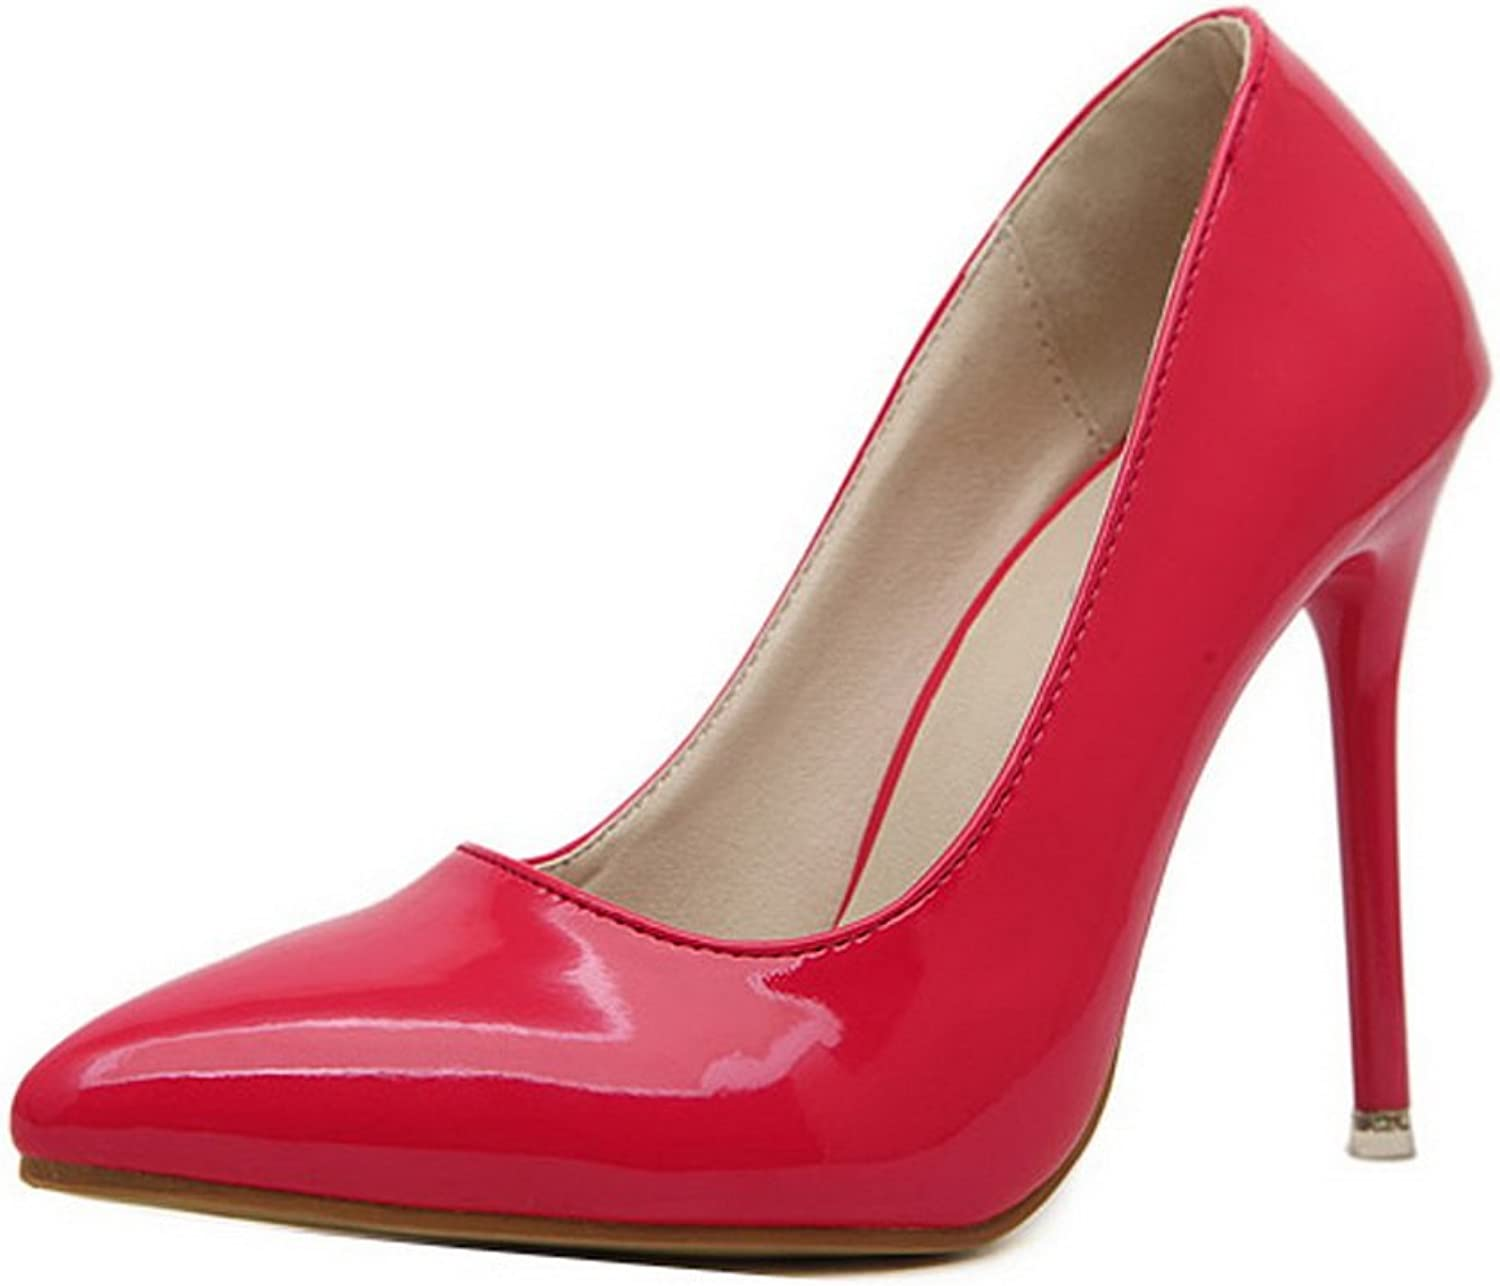 Ladola Womens Slip-Resistant Pointed-Toe Formal Water_Resistant Urethane Pumps shoes